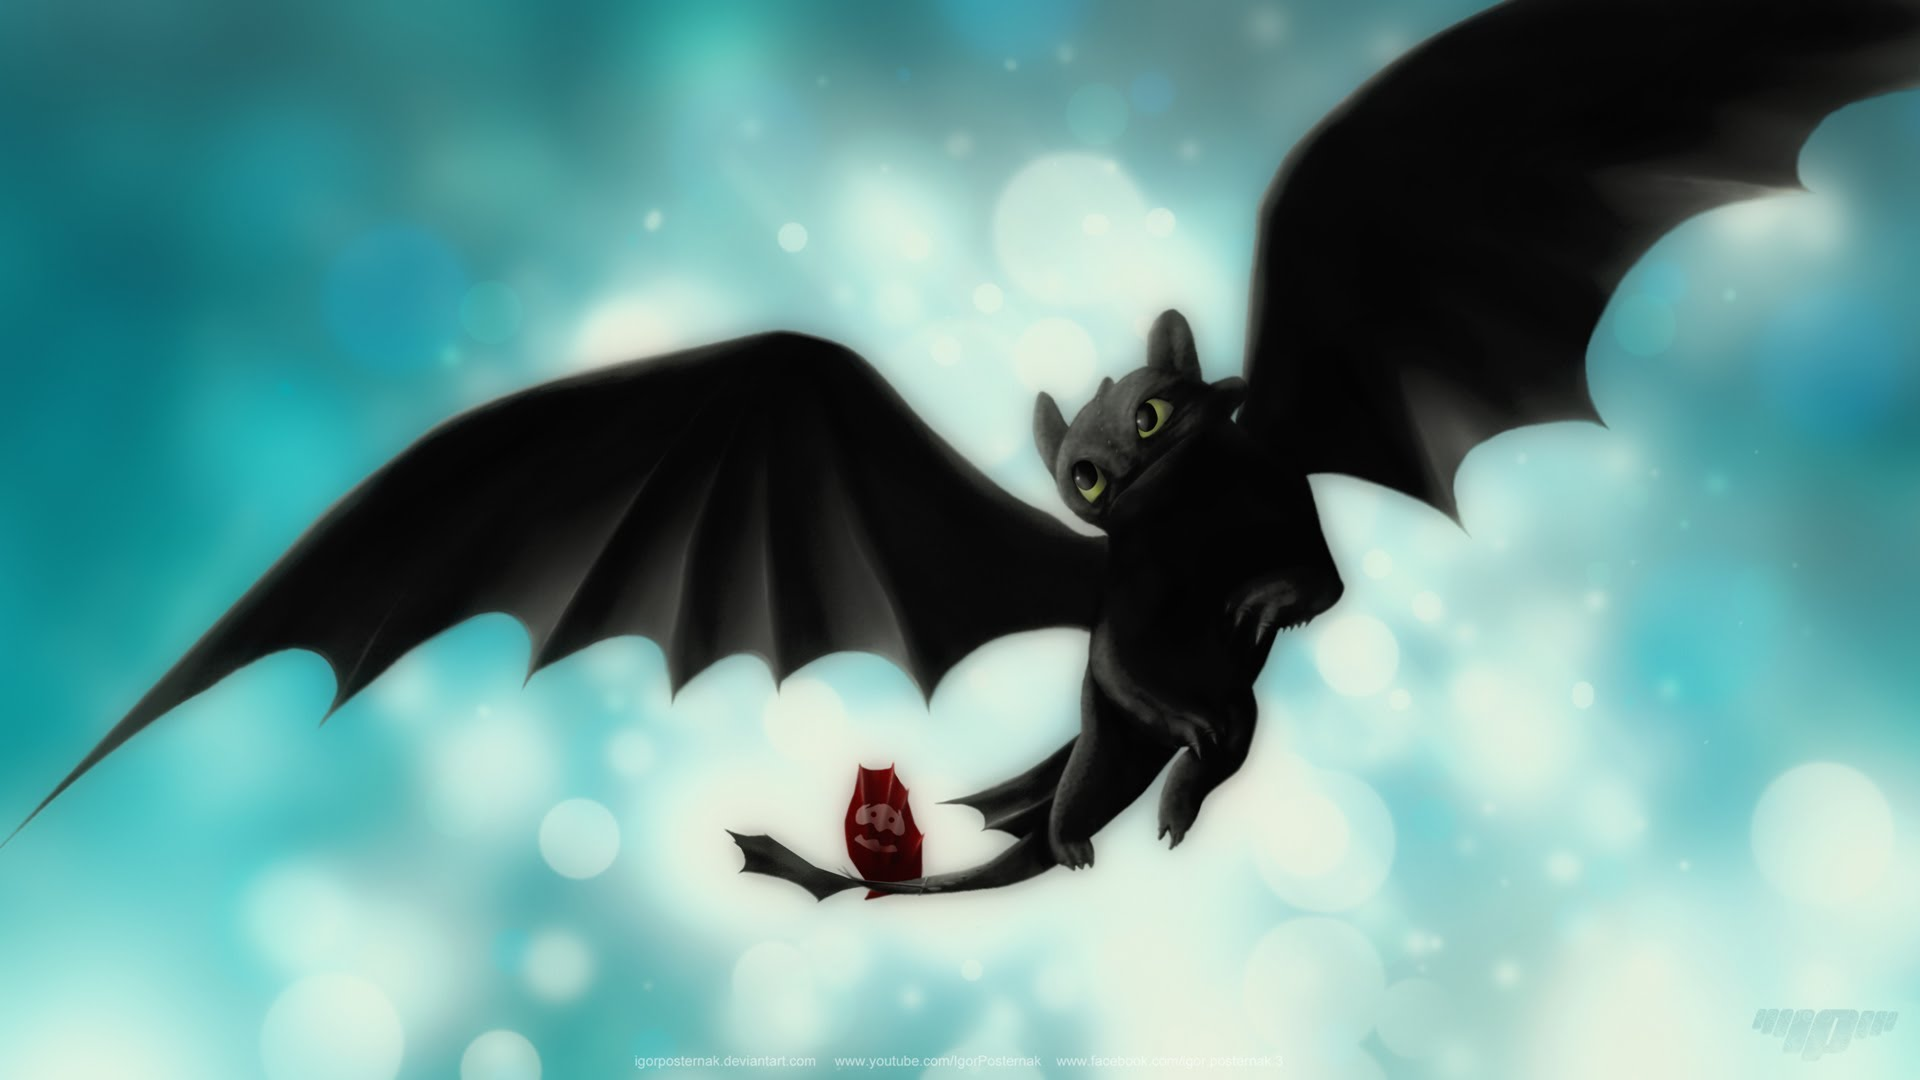 Download How To Train Your Dragon 3 2018 1920x1080 77 Toothless